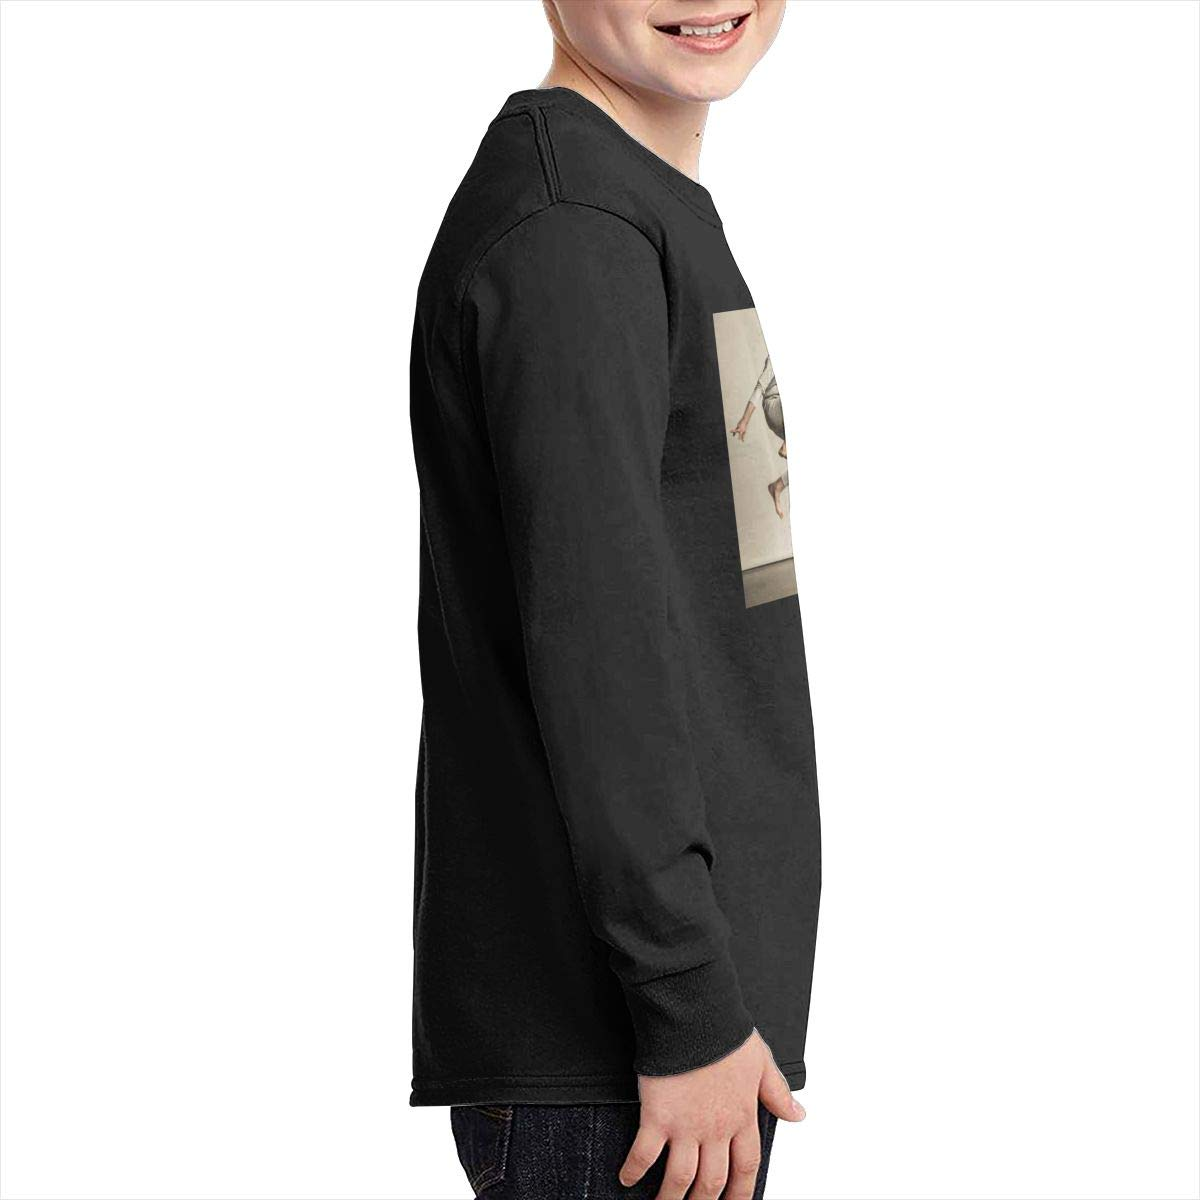 RhteGui AJR Boys /& Girls Junior Vintage Long Sleeve T-Shirt Black